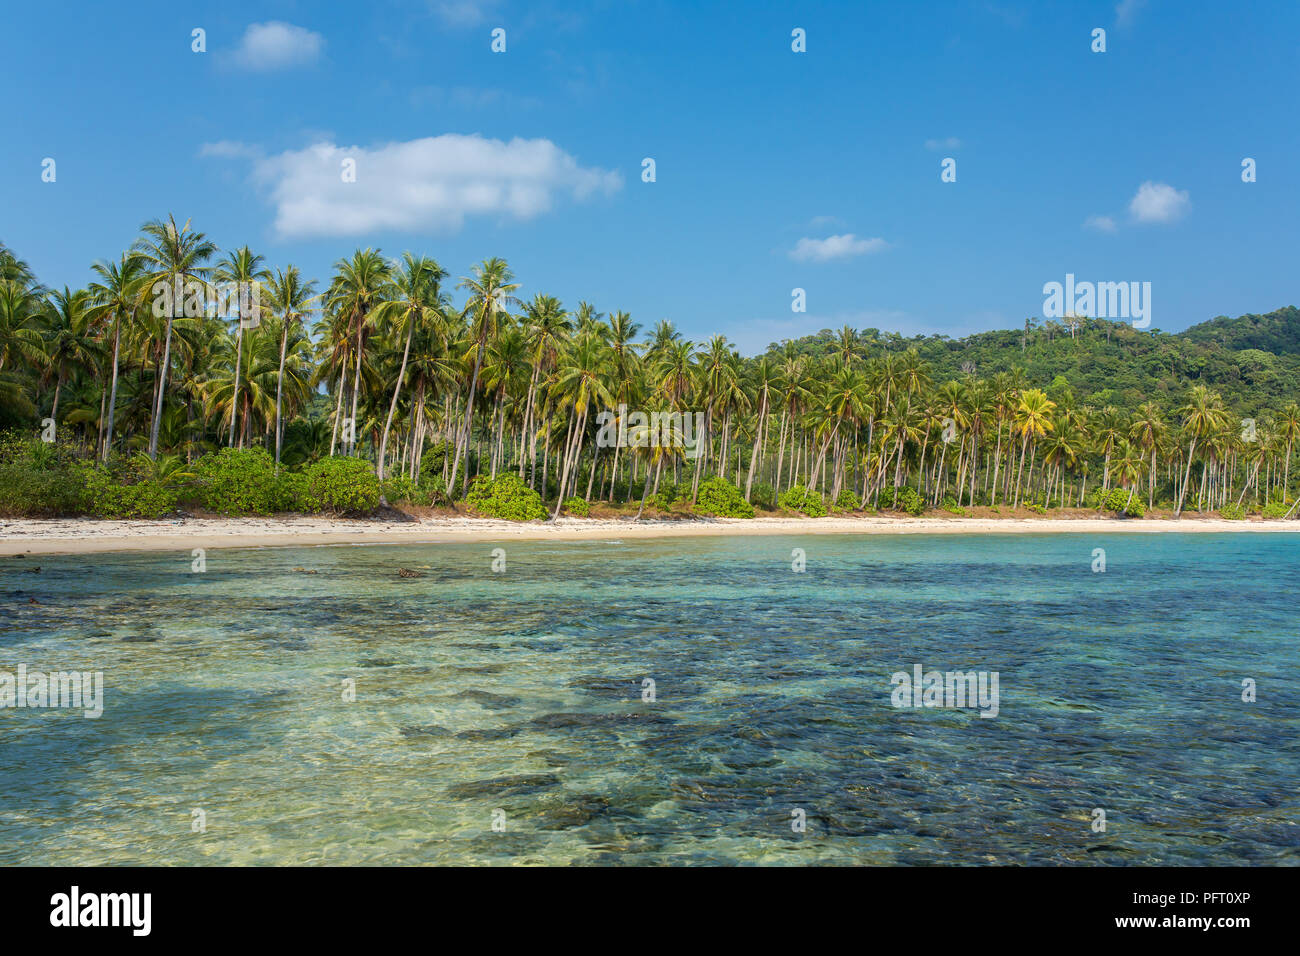 Palm trees on beautiful tropical beach on Koh Chang island in Thailand - Stock Image